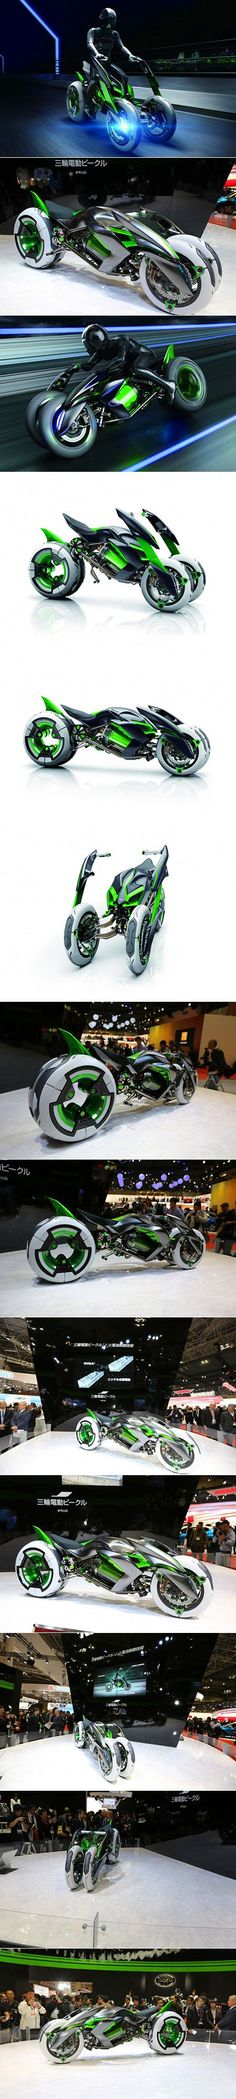 "Kawasaki threw another fascinating oddity into the ring at the Tokyo Motor Show today with the unveiling of the outlandish, shape-shifting ""J"" 3-wheel electric vehicle concept."